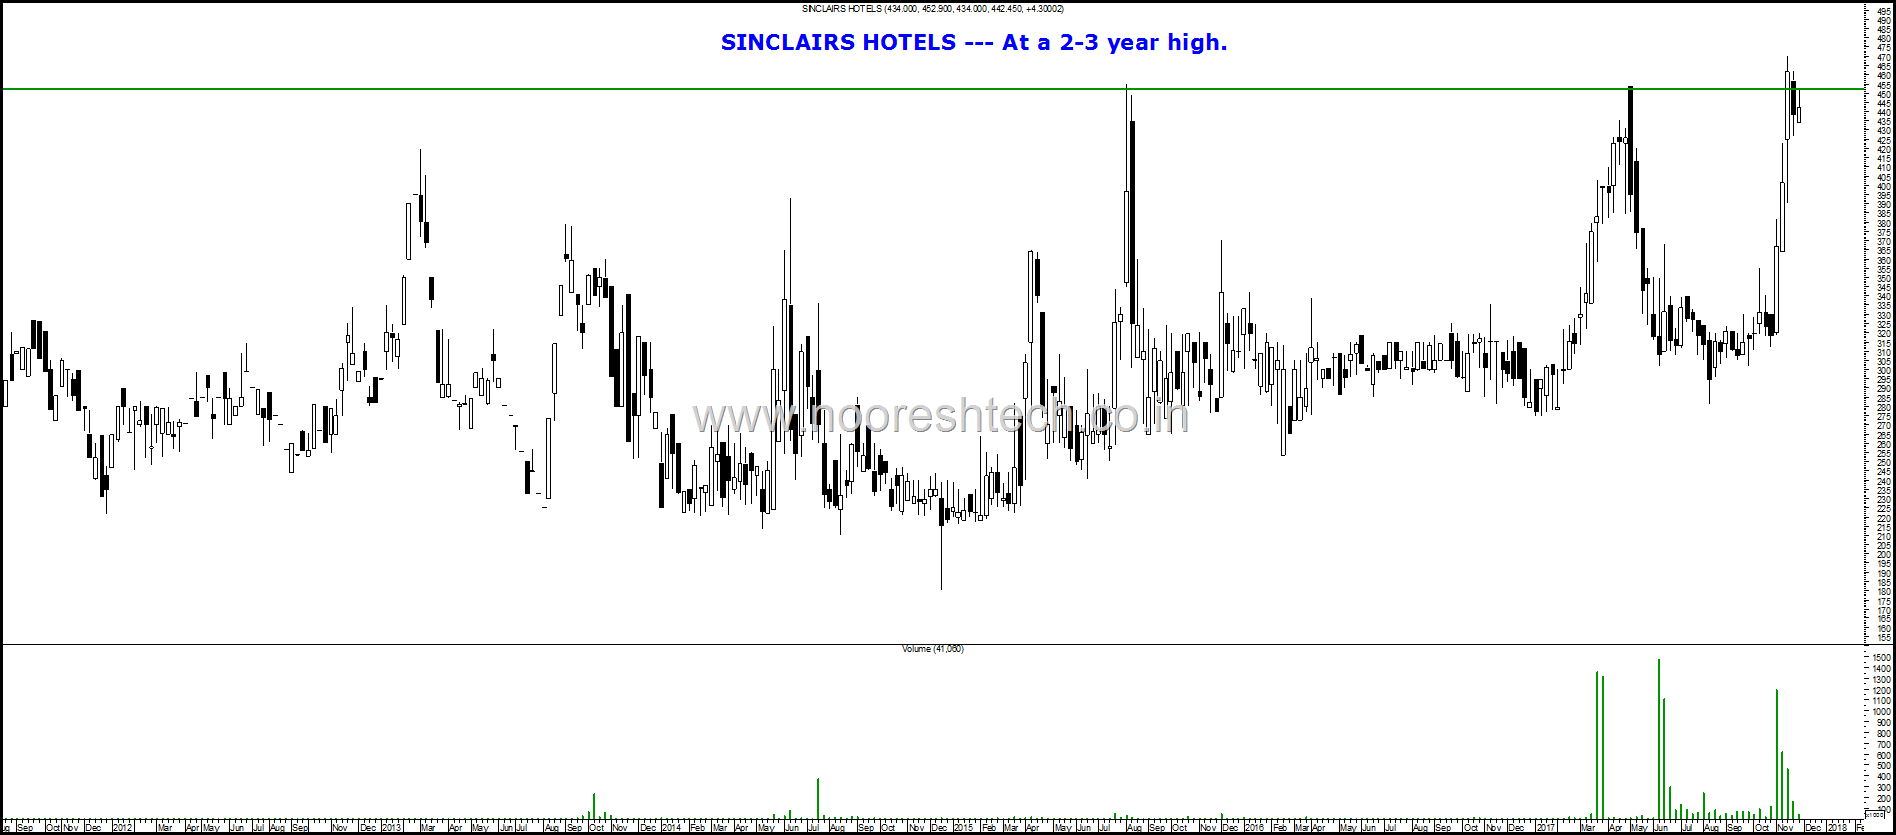 Sinclairs Hotels